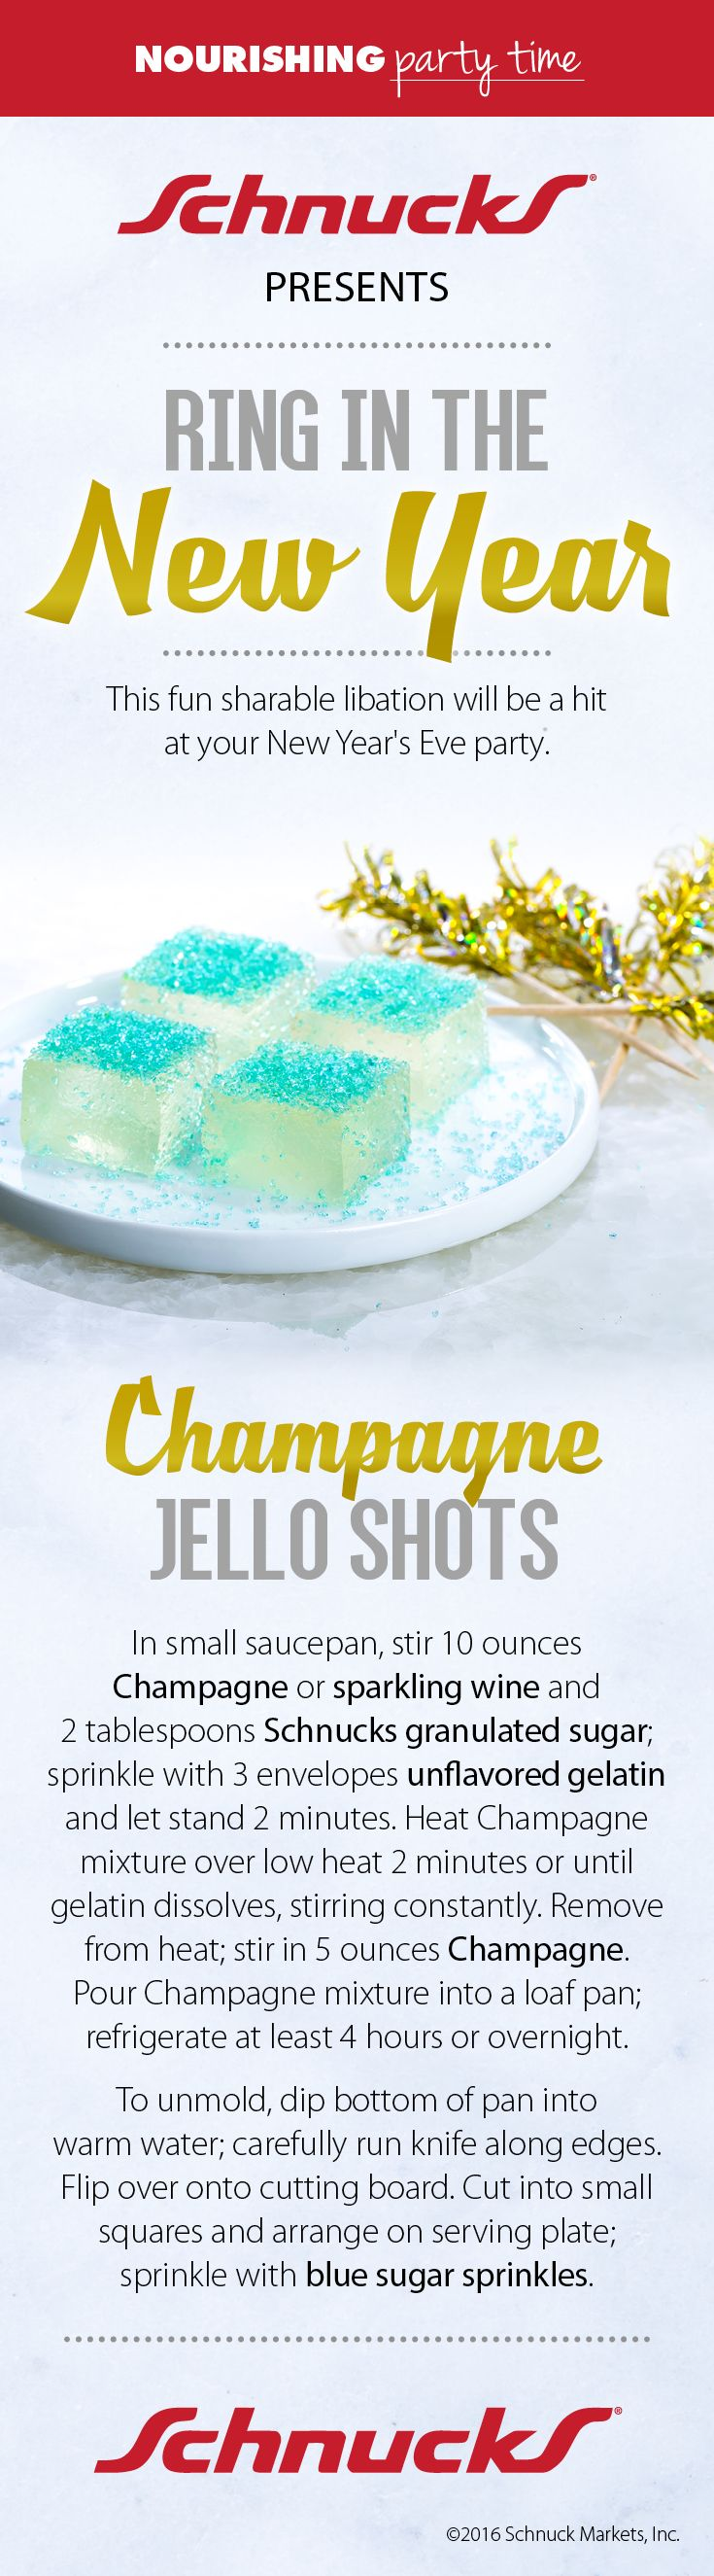 The perfect New Year's Eve Champagne Jello Shots! Gotta keep is classy San Diego